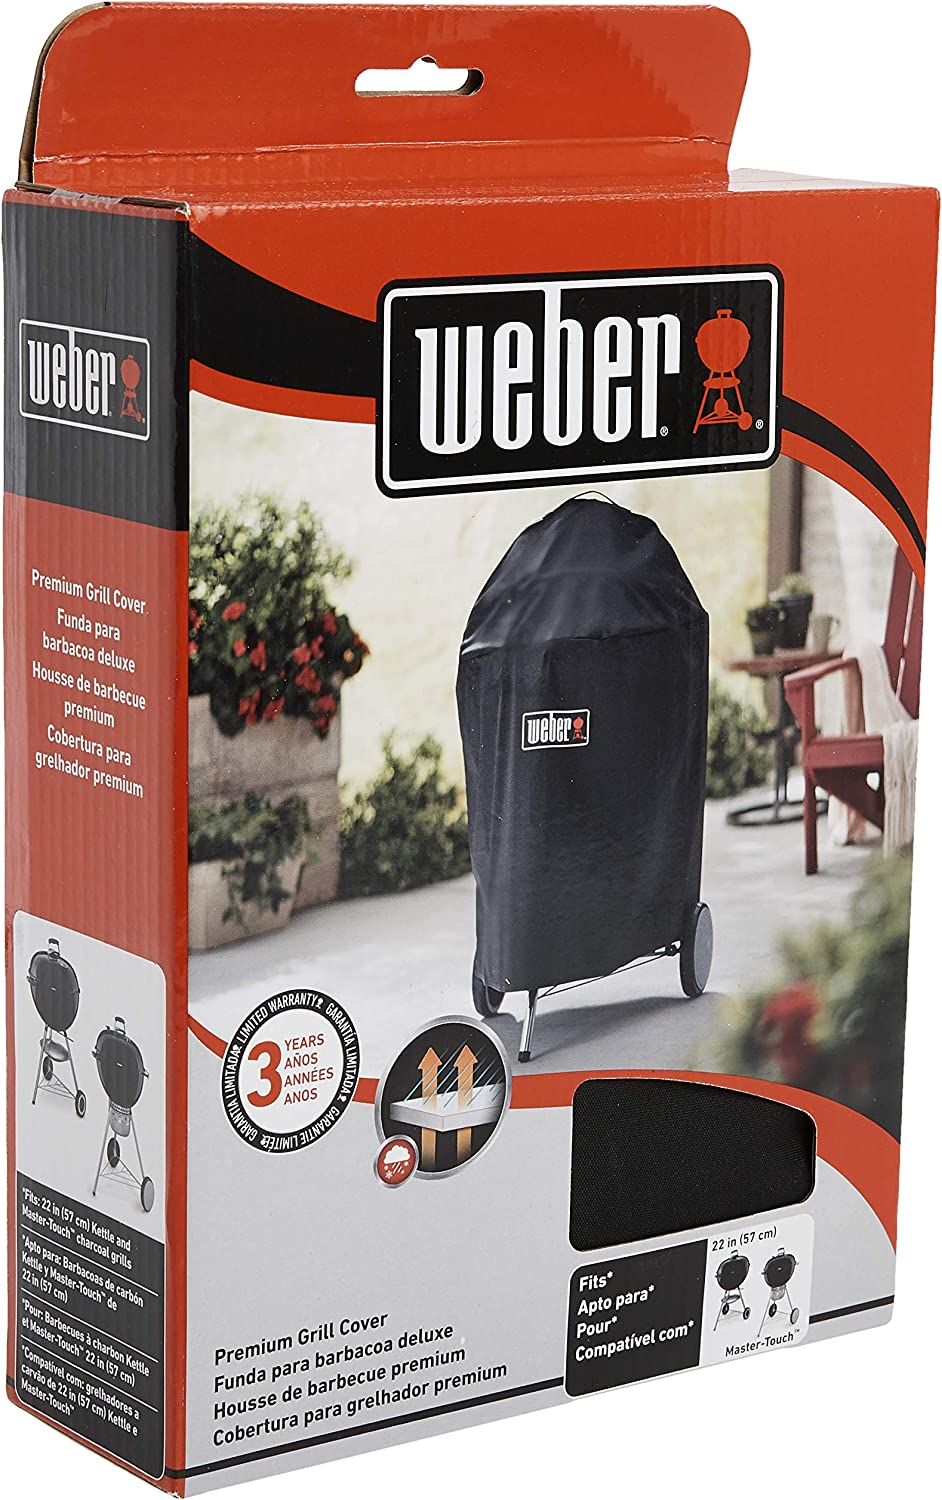 Weber Premium 22 Inch Charcoal Grill Cover Garden Outdoor Amazon Com